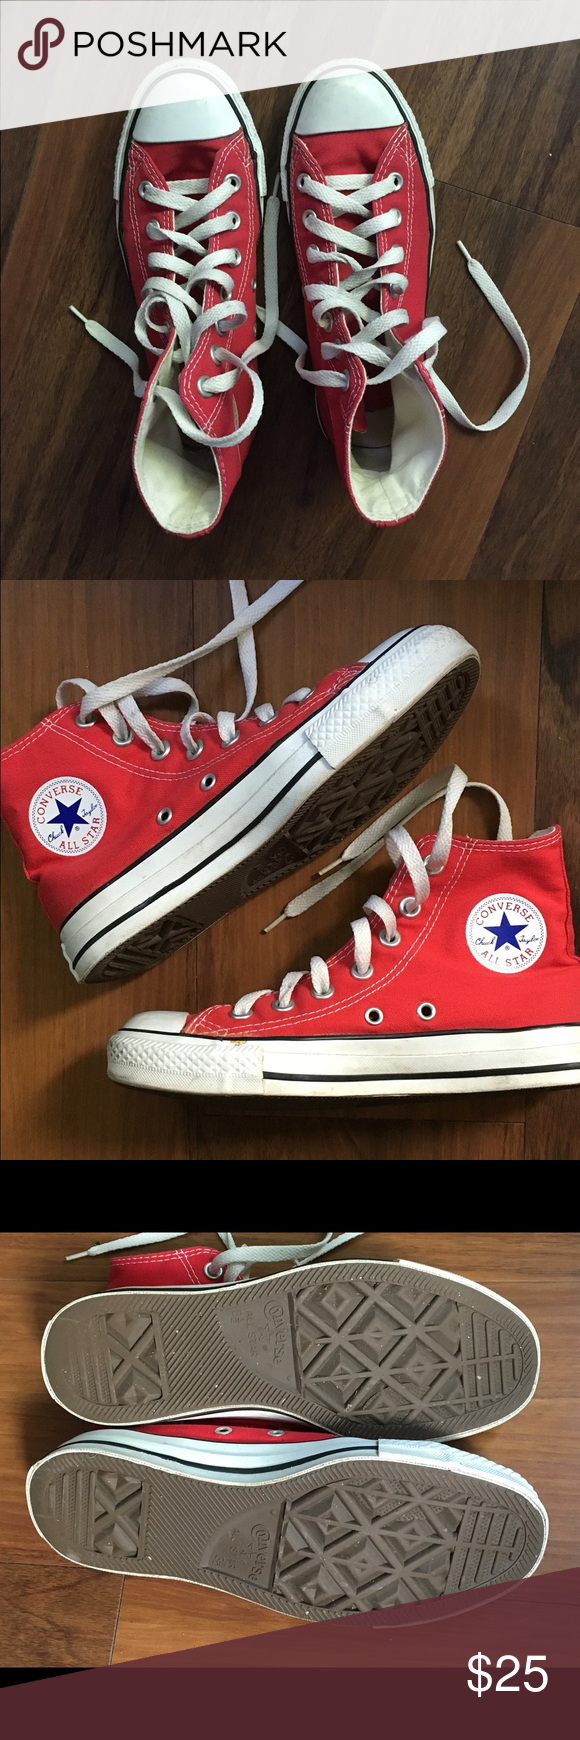 Converse All Star High Tops Red Converse All Star High Tops. Classic, authentic style. Worn, with normal wear. Women's size 5 1/2. Converse Shoes Athletic Shoes